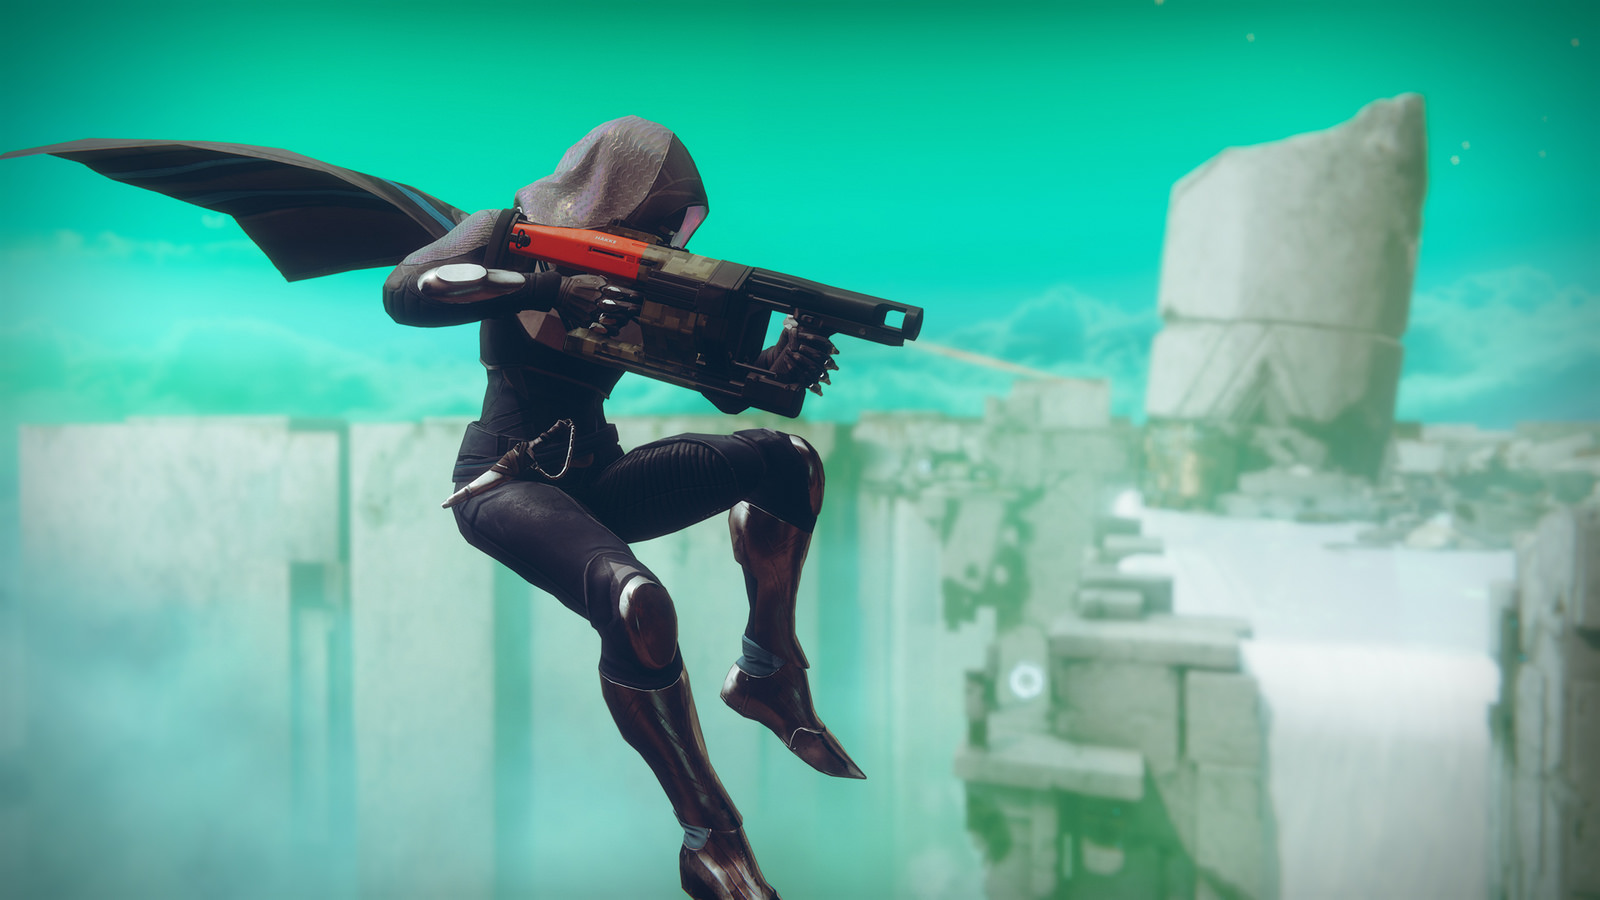 Destiny-Strike-Gameplay-New-Screens-Hands-on-Impressions-Playstation-PS-Sony-videogames-pl-wallpaper-wpc9004222